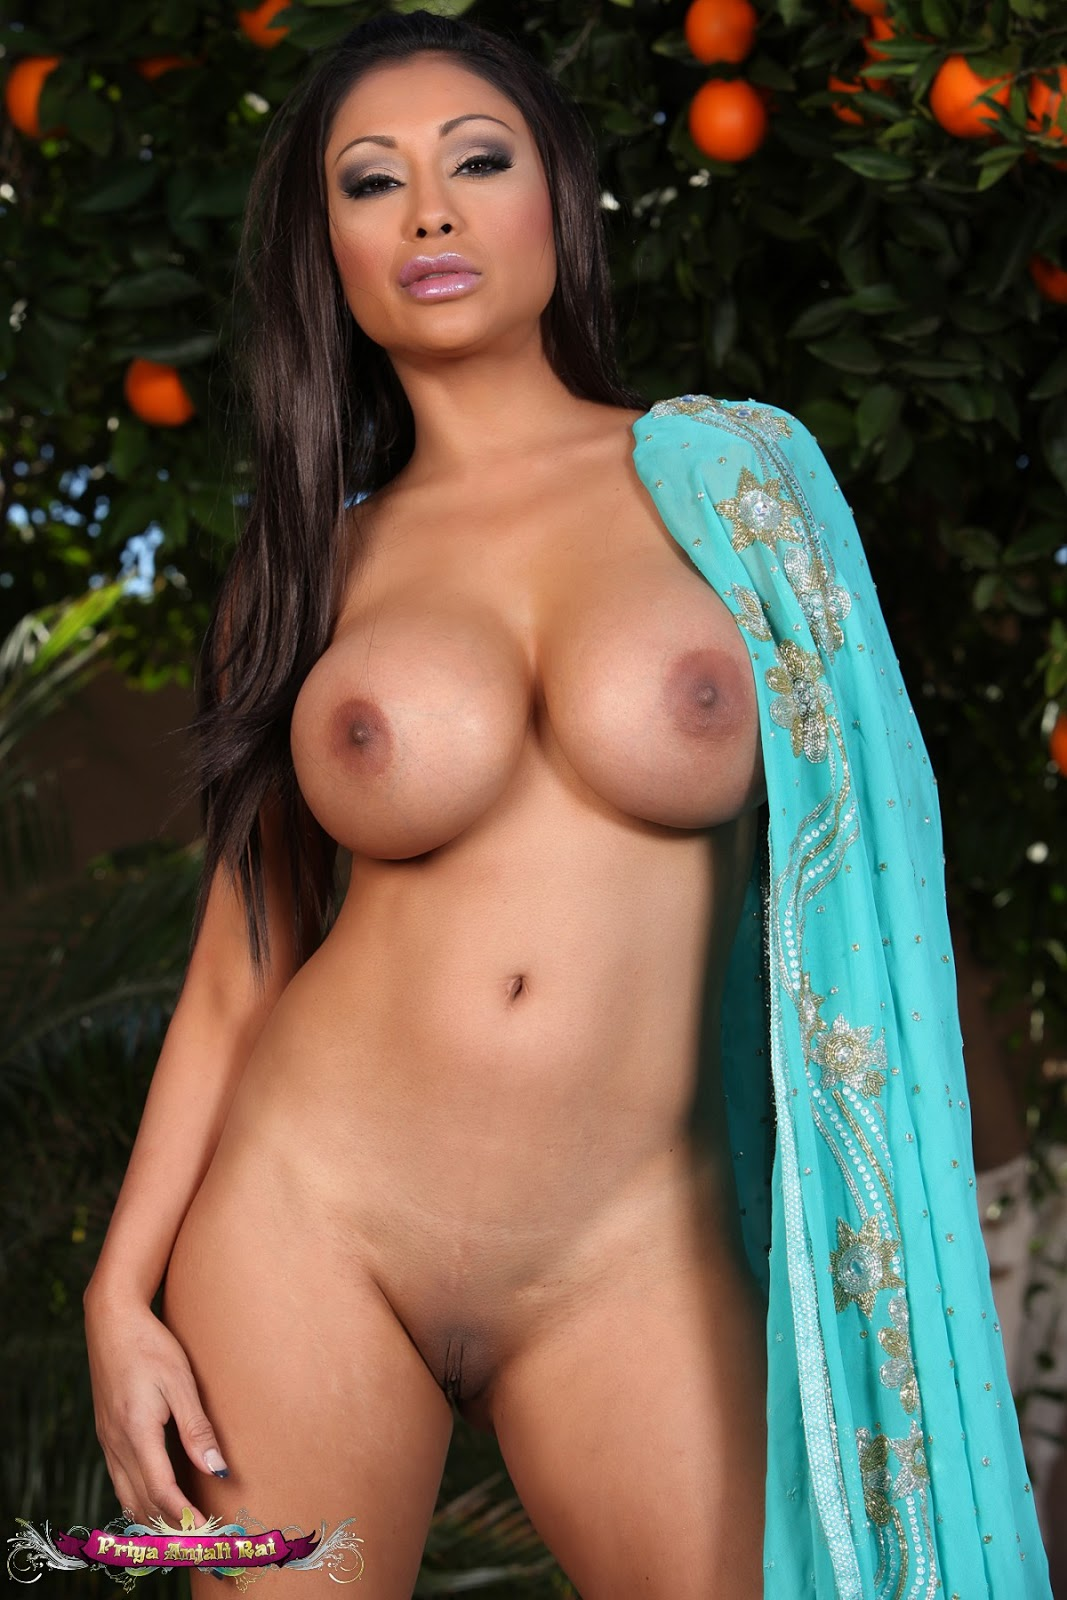 Opinion Nude indian babes hd sorry, that